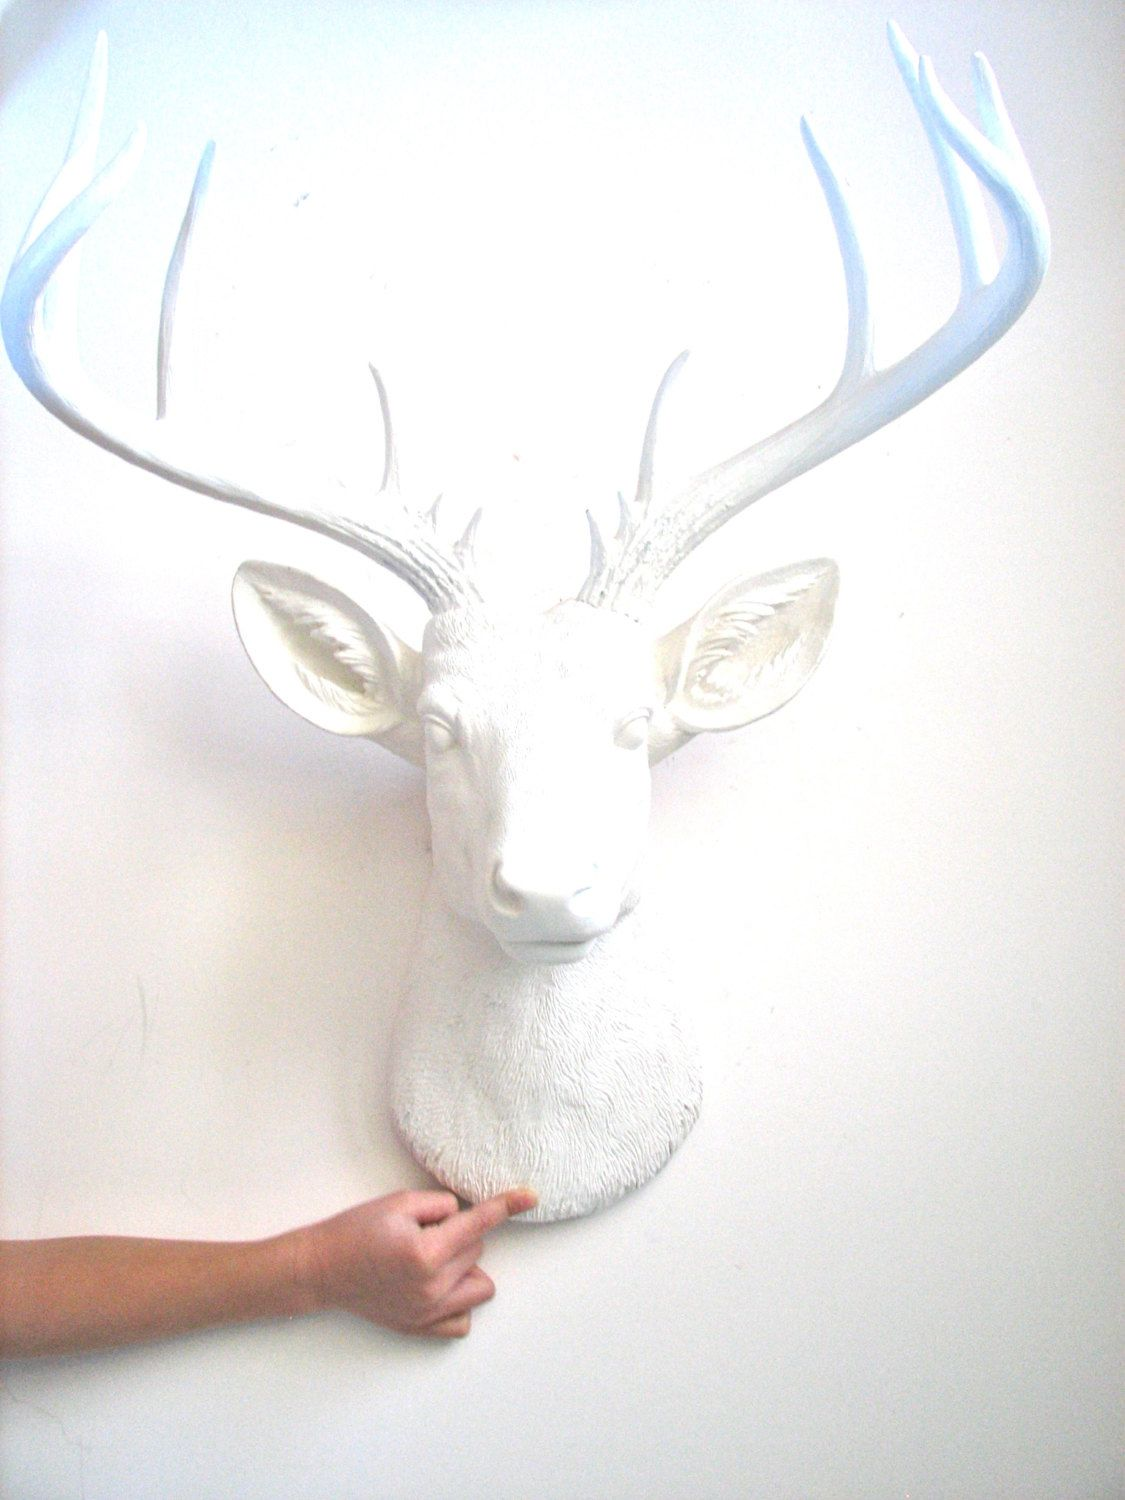 X-Large Faux Taxidermy Deer Head wall mount hanging nursery kids rooms office home decor:  Doug the XL Deer head in all white by mahzerandvee on Etsy https://www.etsy.com/listing/220100067/x-large-faux-taxidermy-deer-head-wall